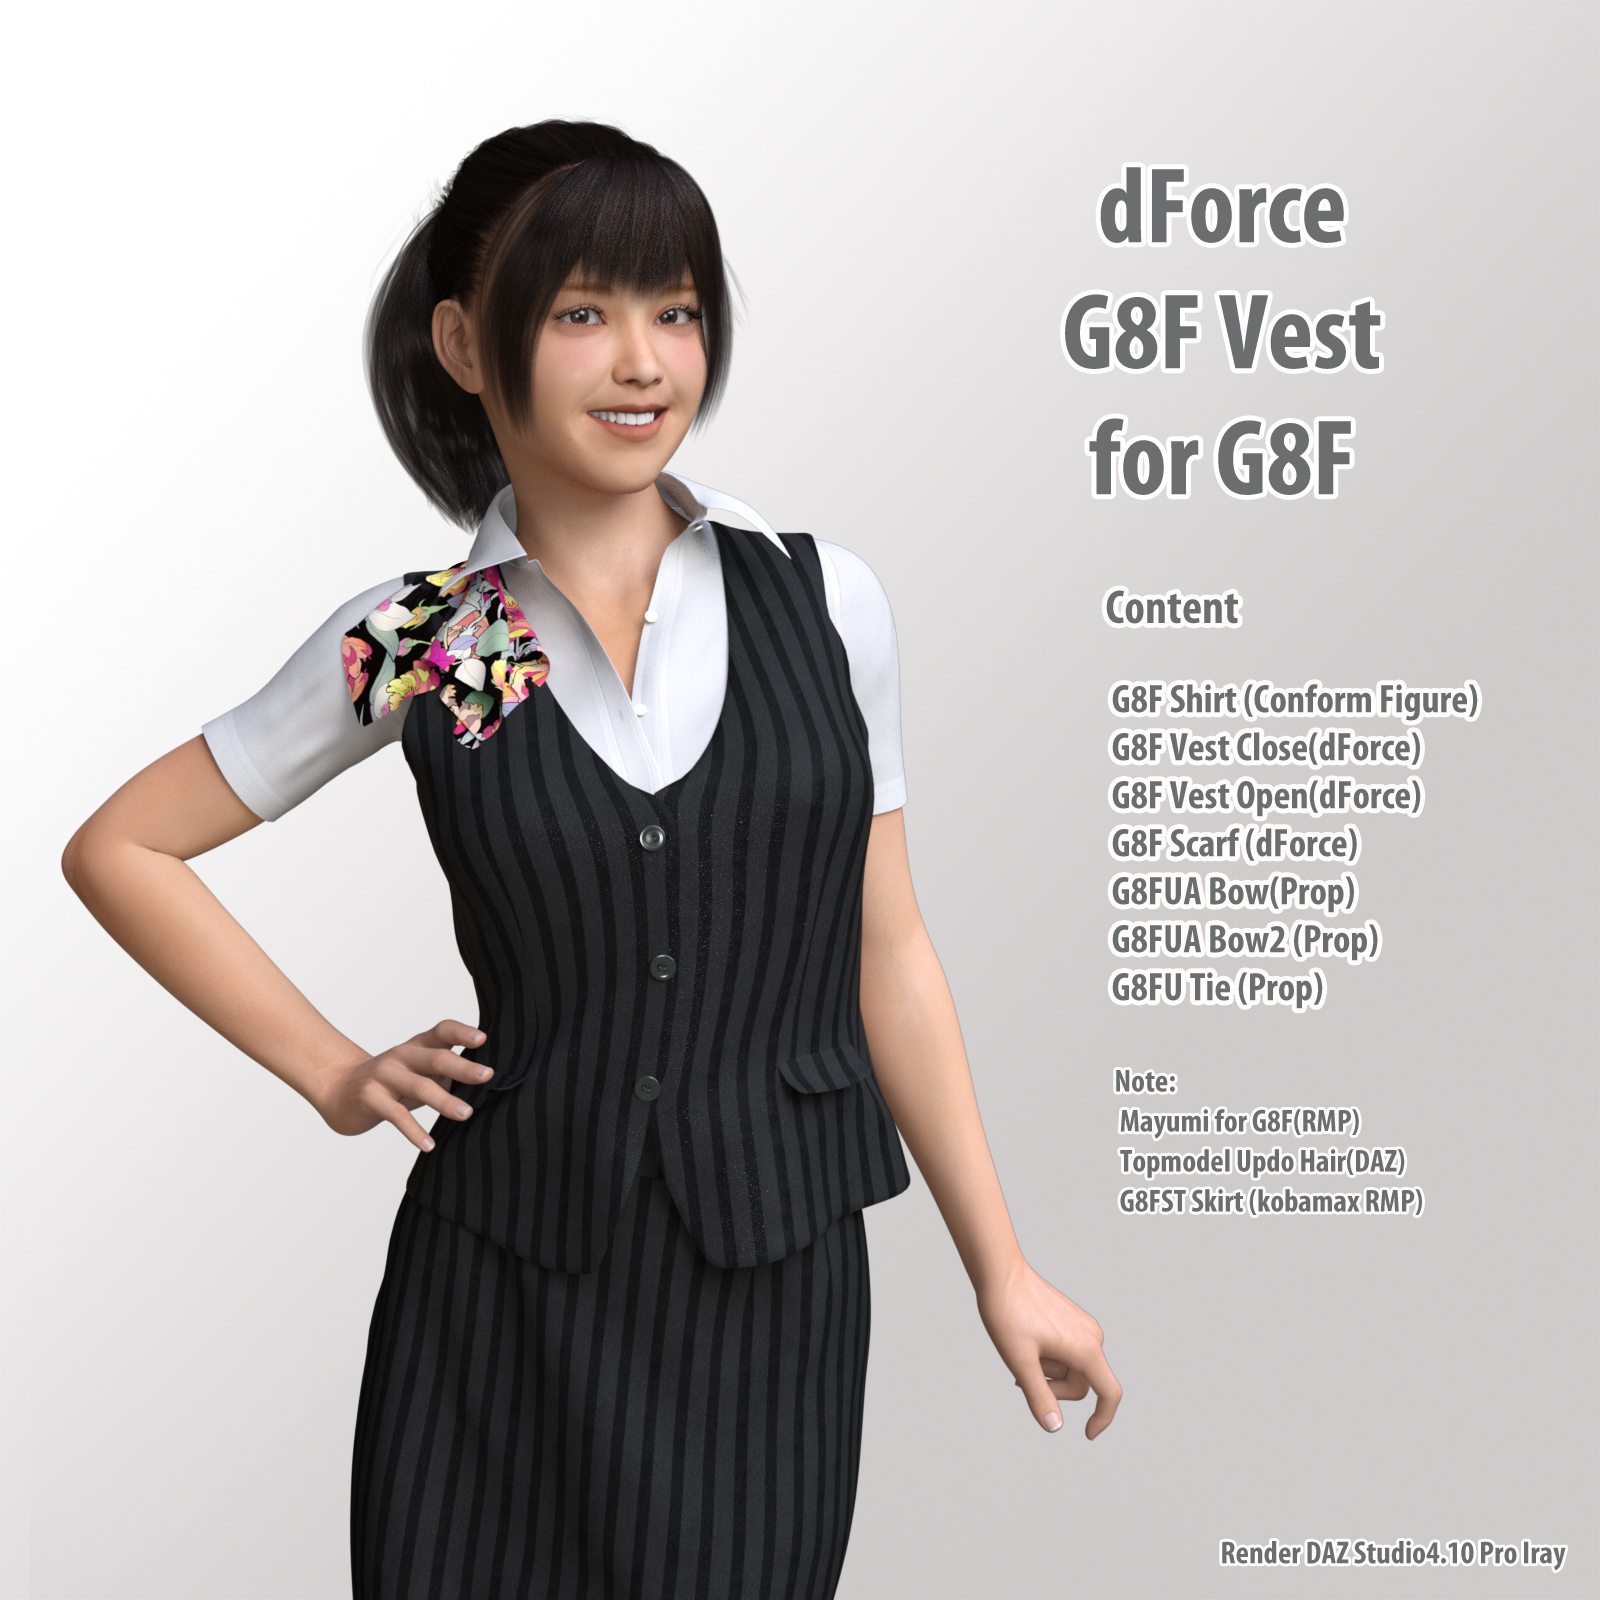 dForce G8F Vest for G8F by kobamax